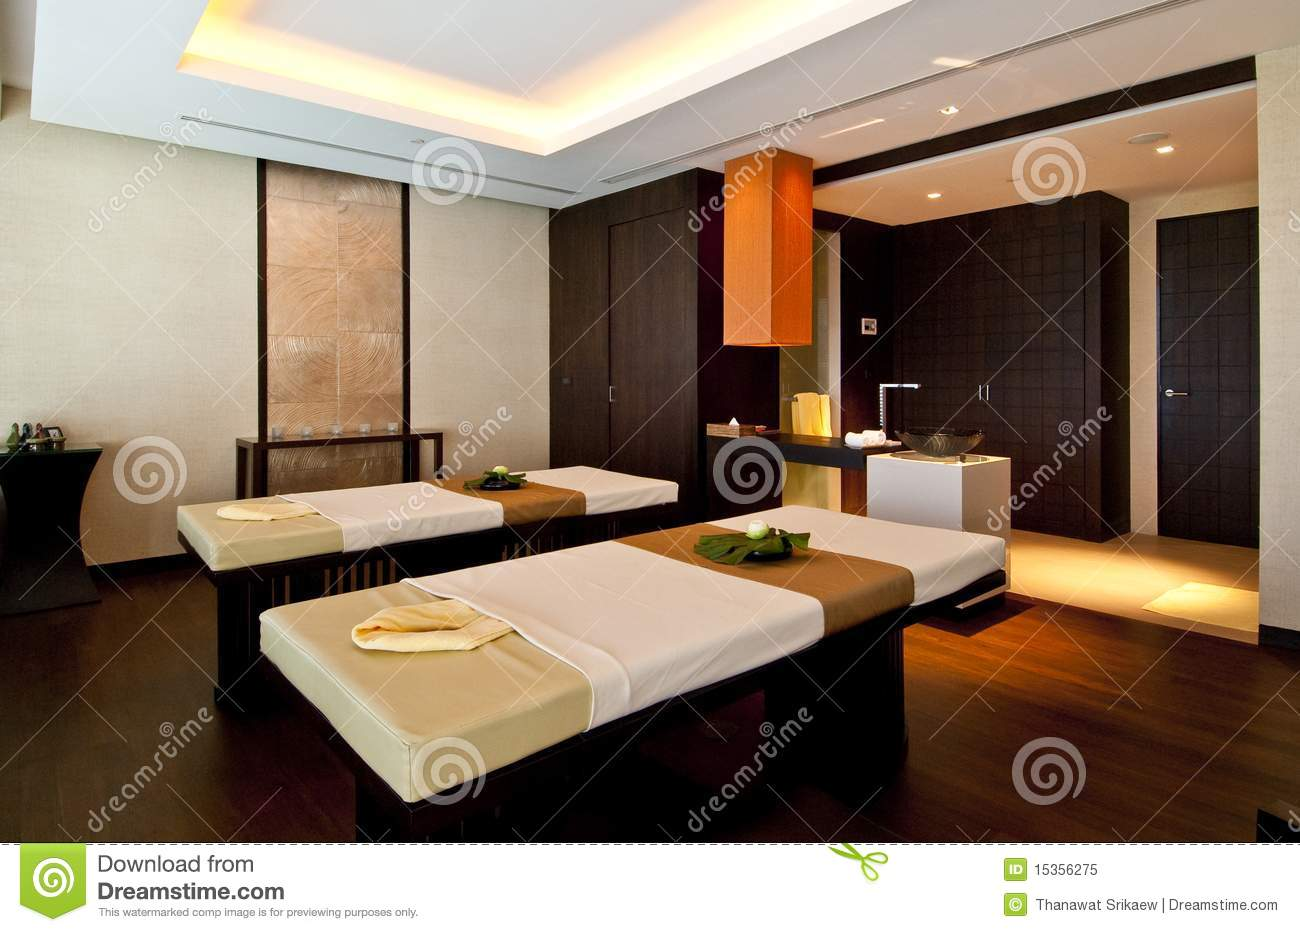 Aroma Spa Room Color ~ Massageraum stockbild bild von aromatherapy romanze